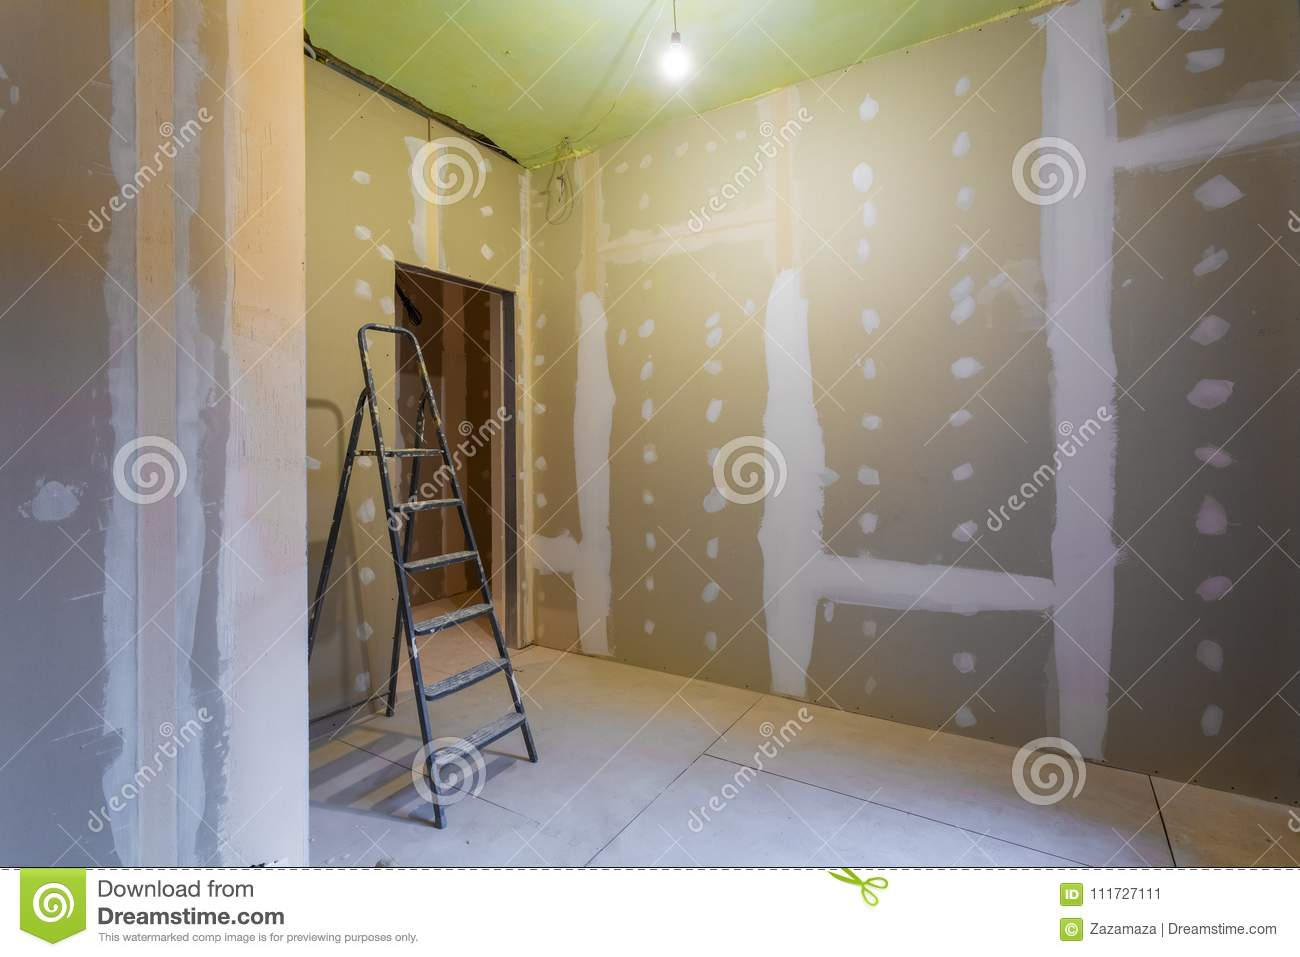 Ladder And Room Interior With Plasterboard Drywall For